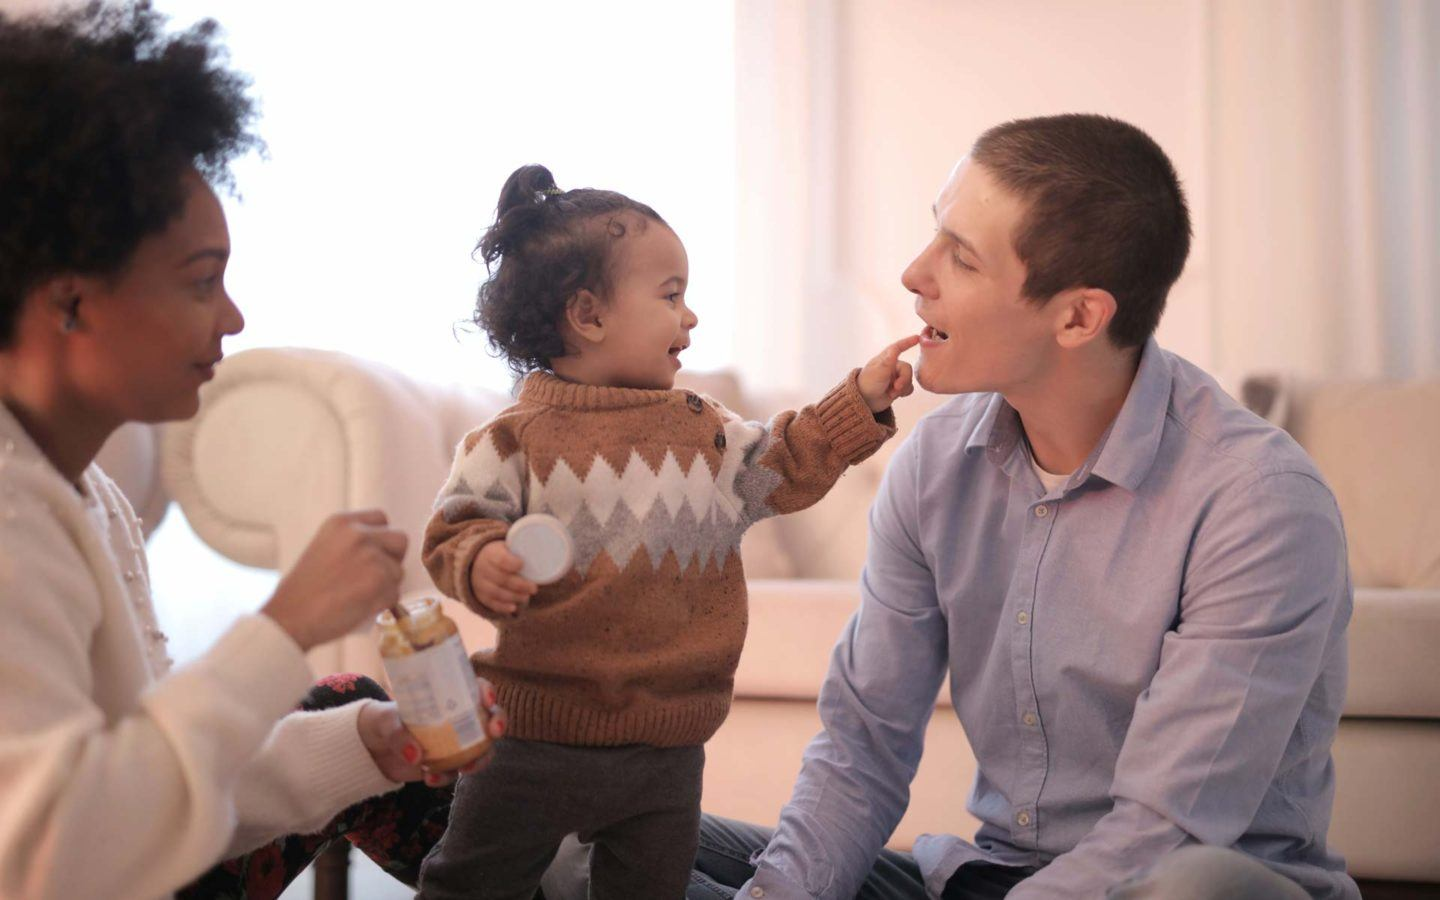 baby girl pointing finger at man's mouth, with women holding baby food